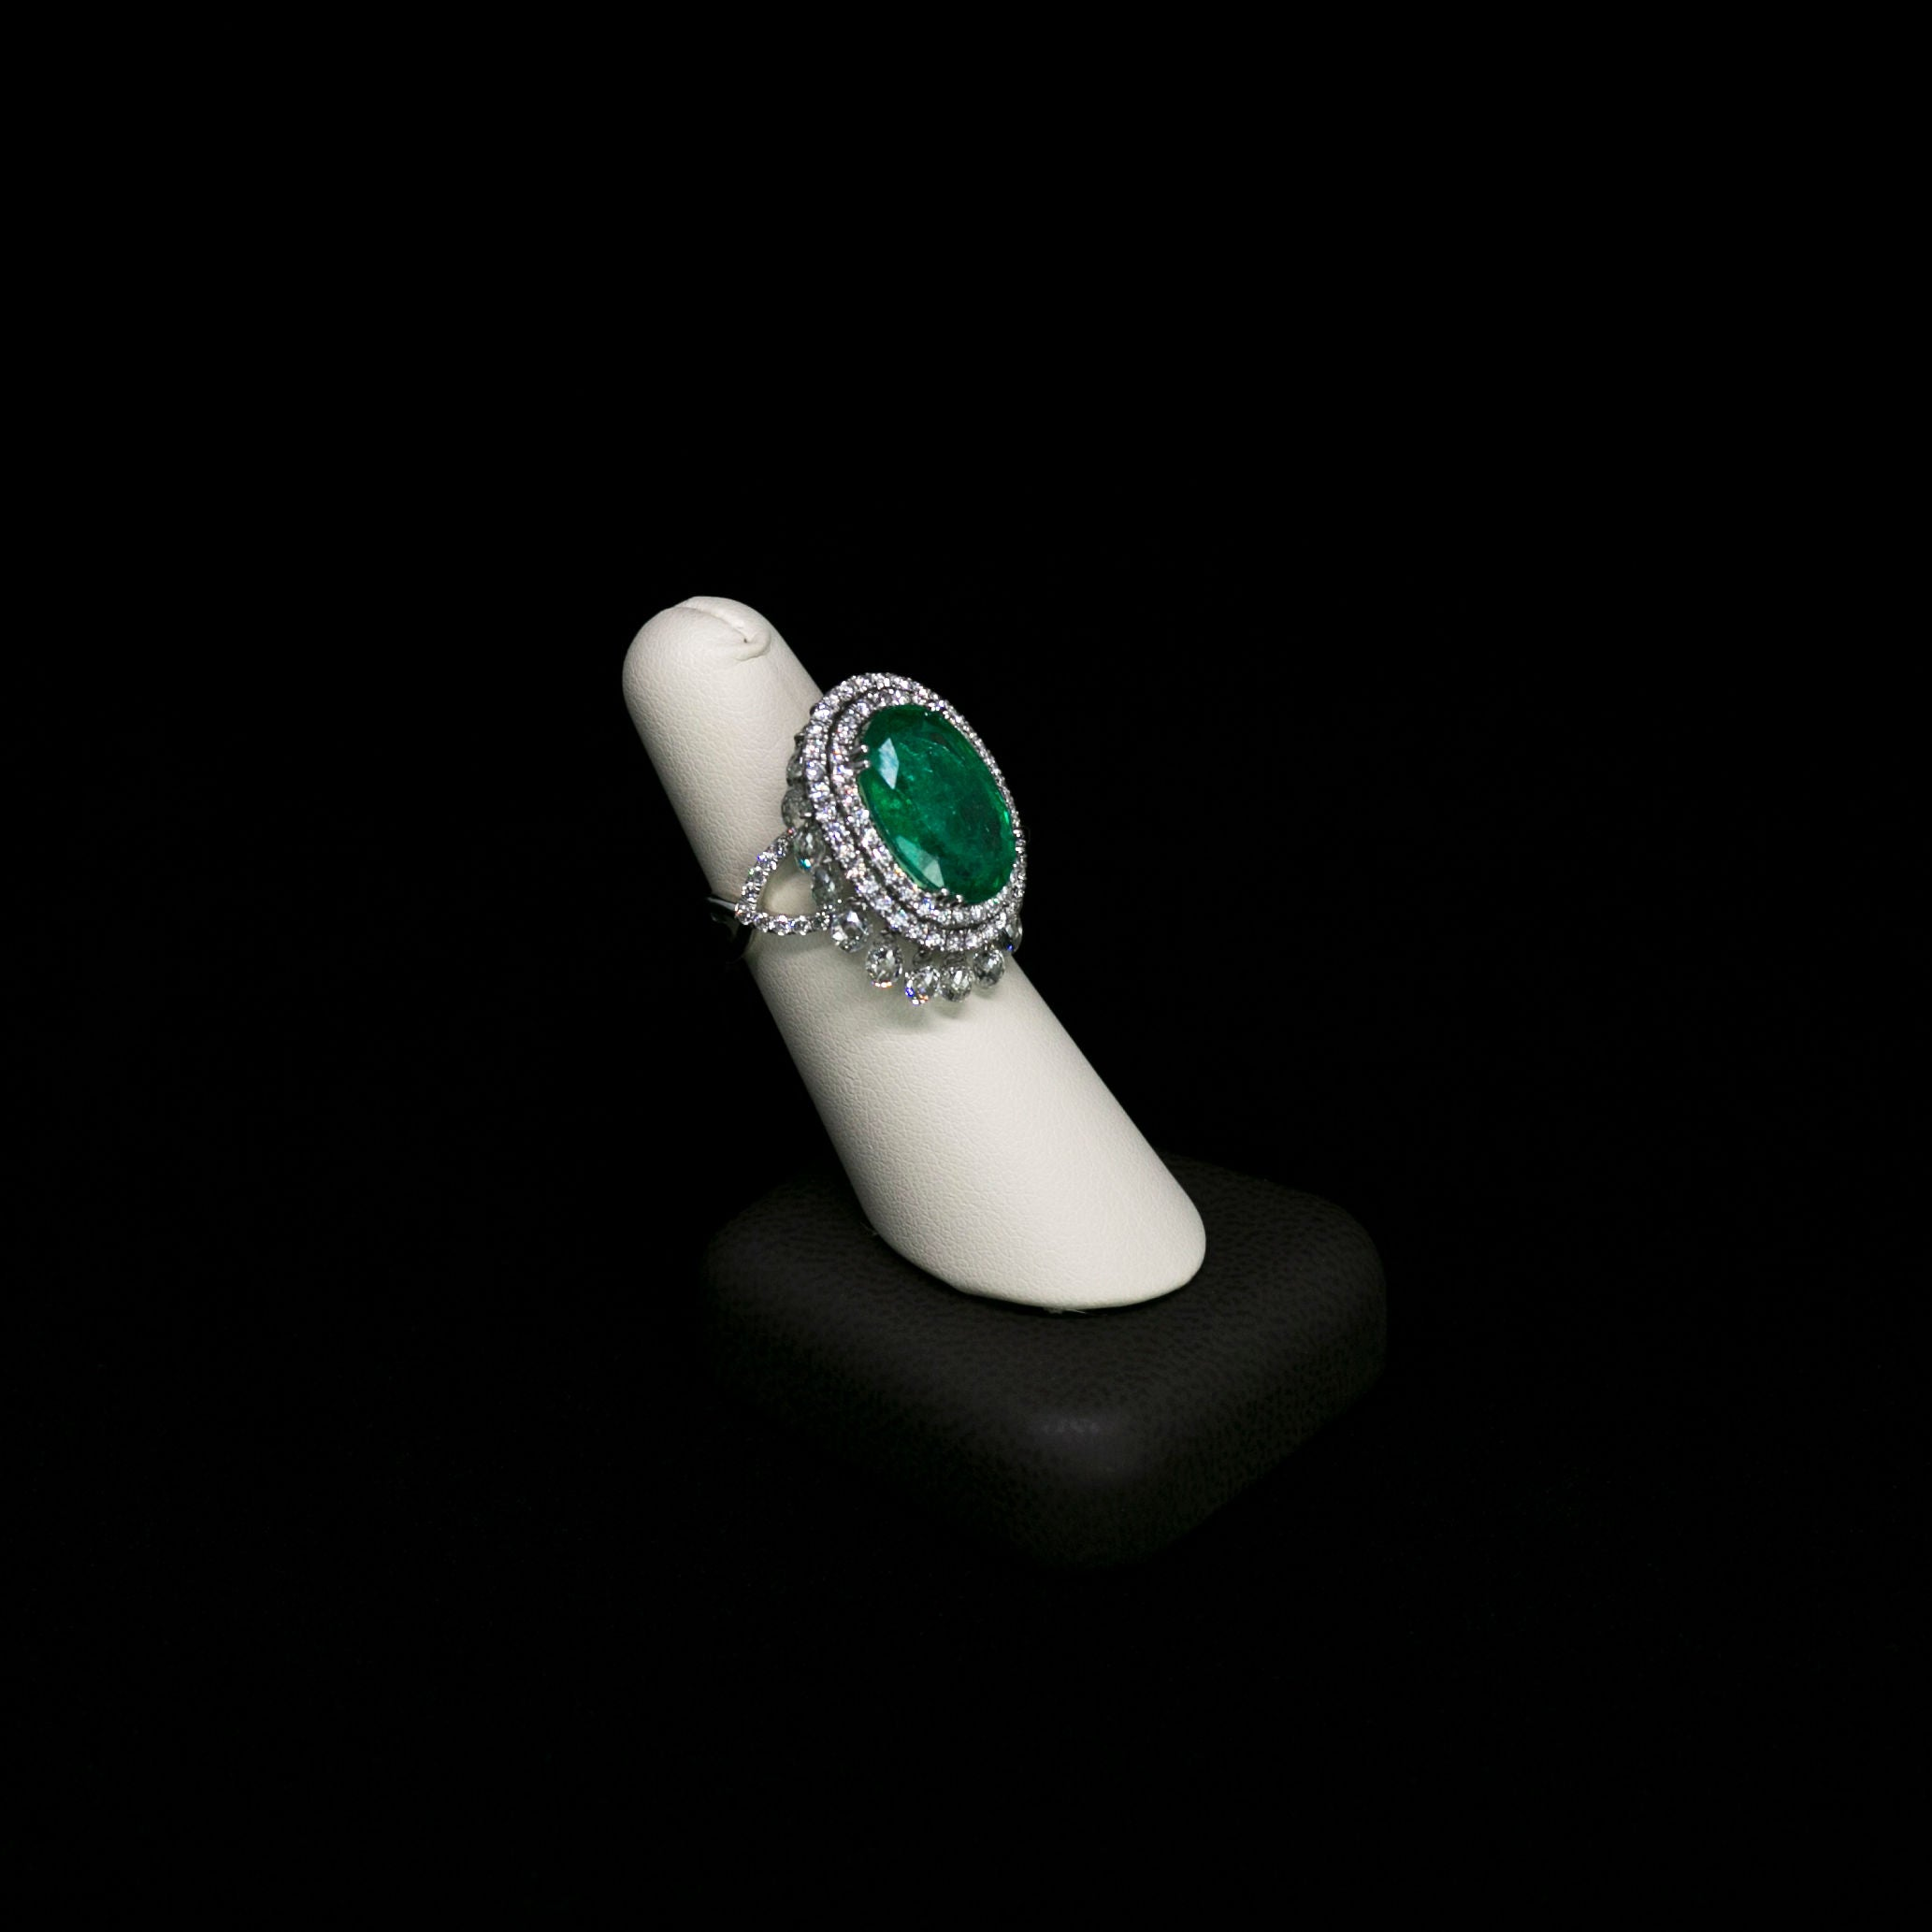 Henri Noël Jewelry oval emerald diamond vintage ring